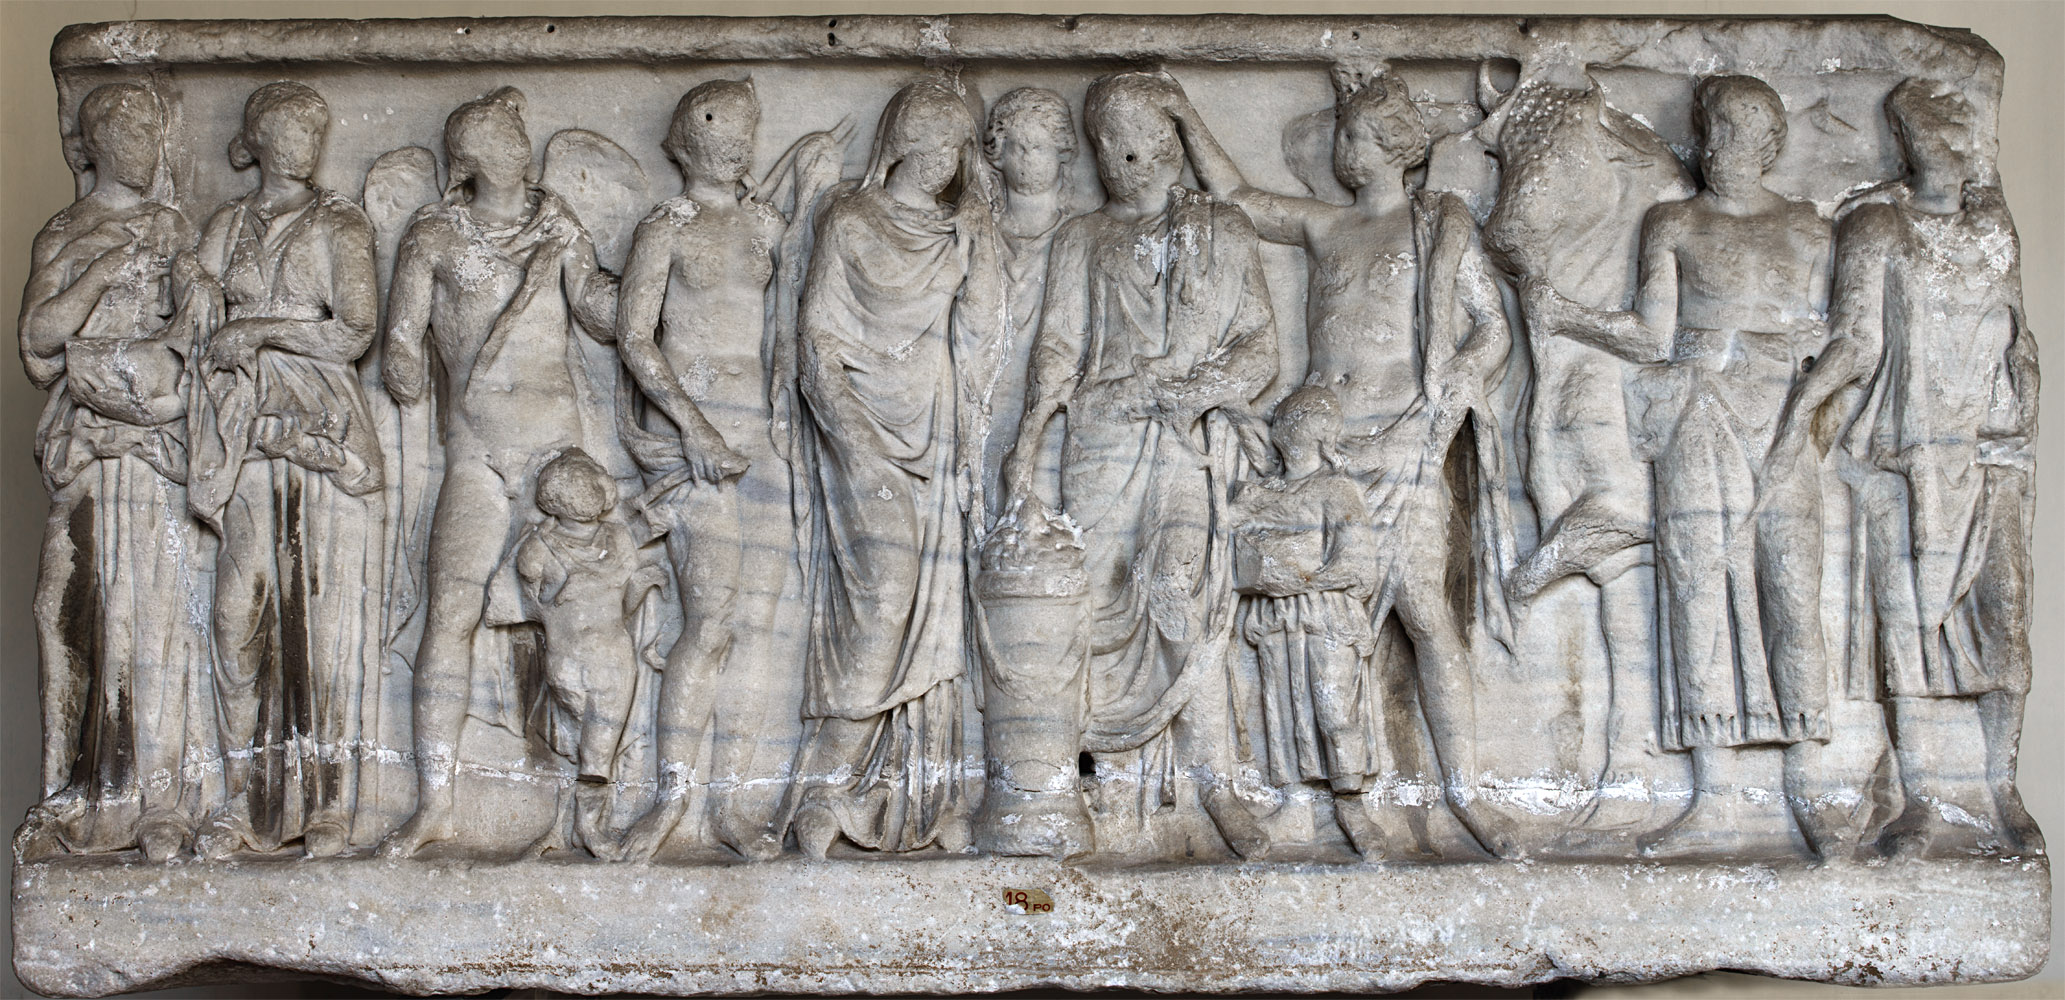 Sarcophagus of the spouses (so-called wedding or marriage sarcophagus) — the front panel. Marble. Antonine age, ca. 180 CE. Inv. No. 1089. Rome, Vatican Museums, Pius-Clementine Museum, Octagonal Court, West Portico, 18